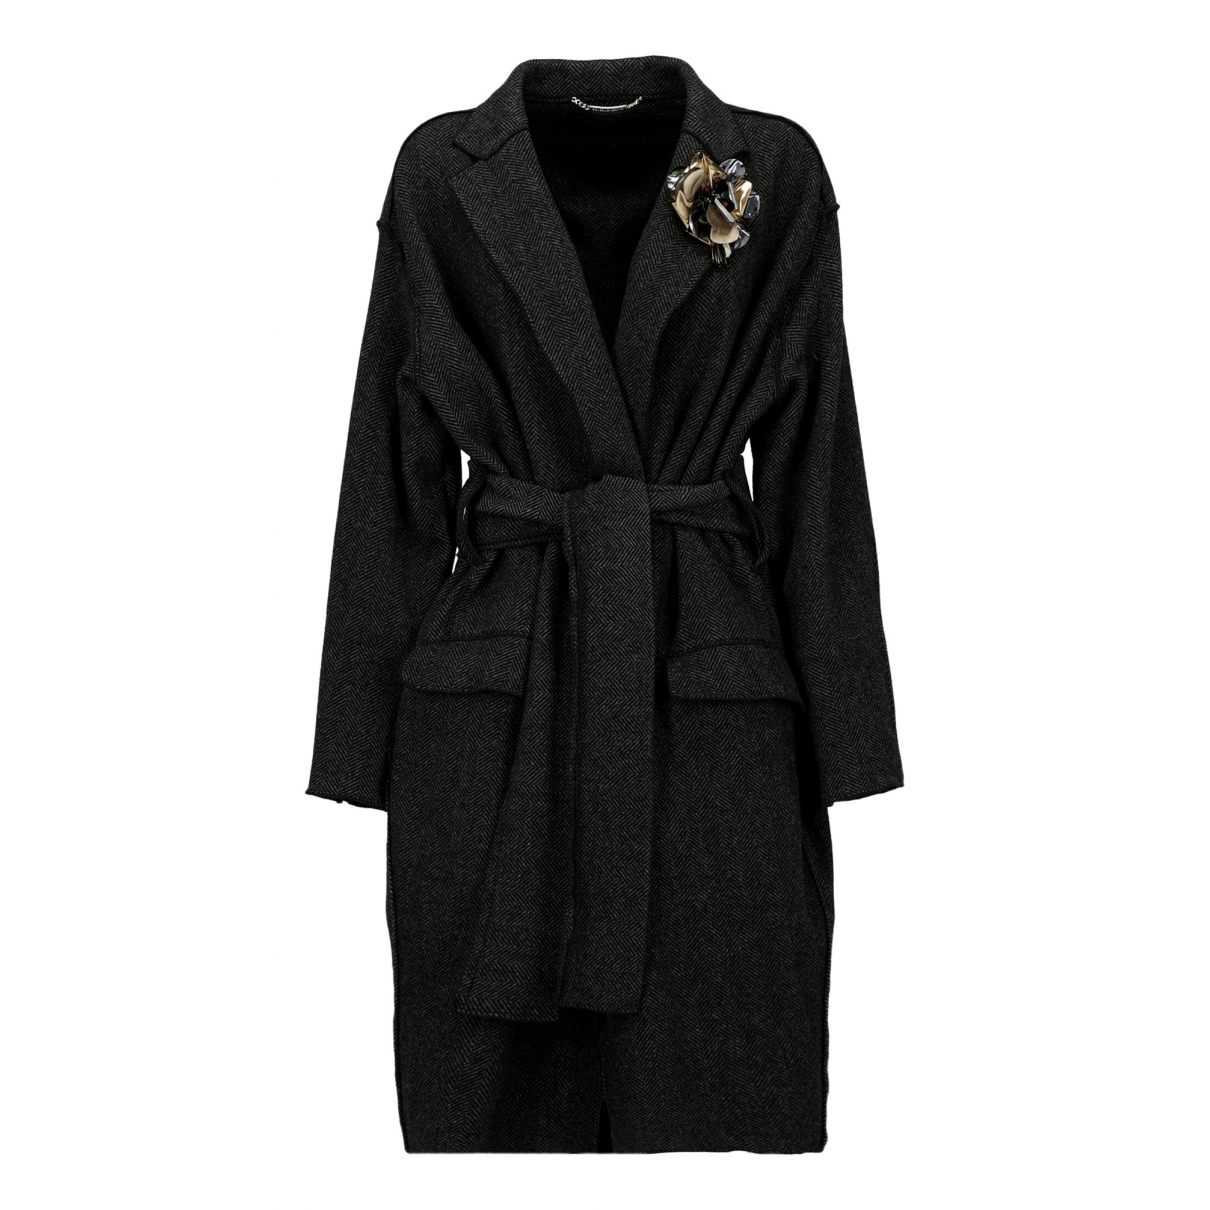 Dolce & Gabbana \N Anthracite Wool coat for Women 46 IT